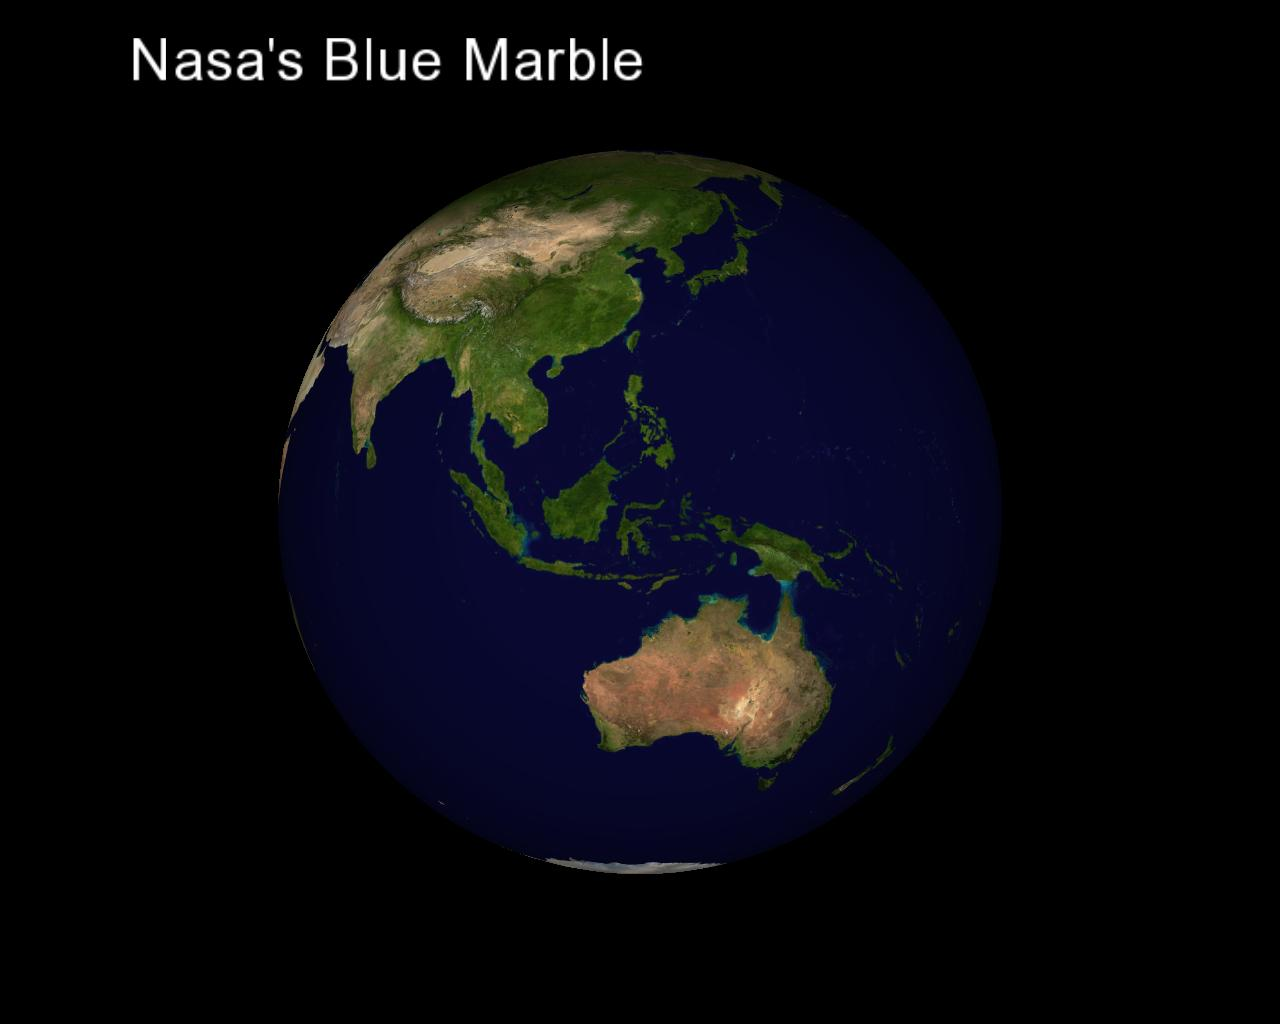 screenshots of the nasas blue marble high resolution imagery